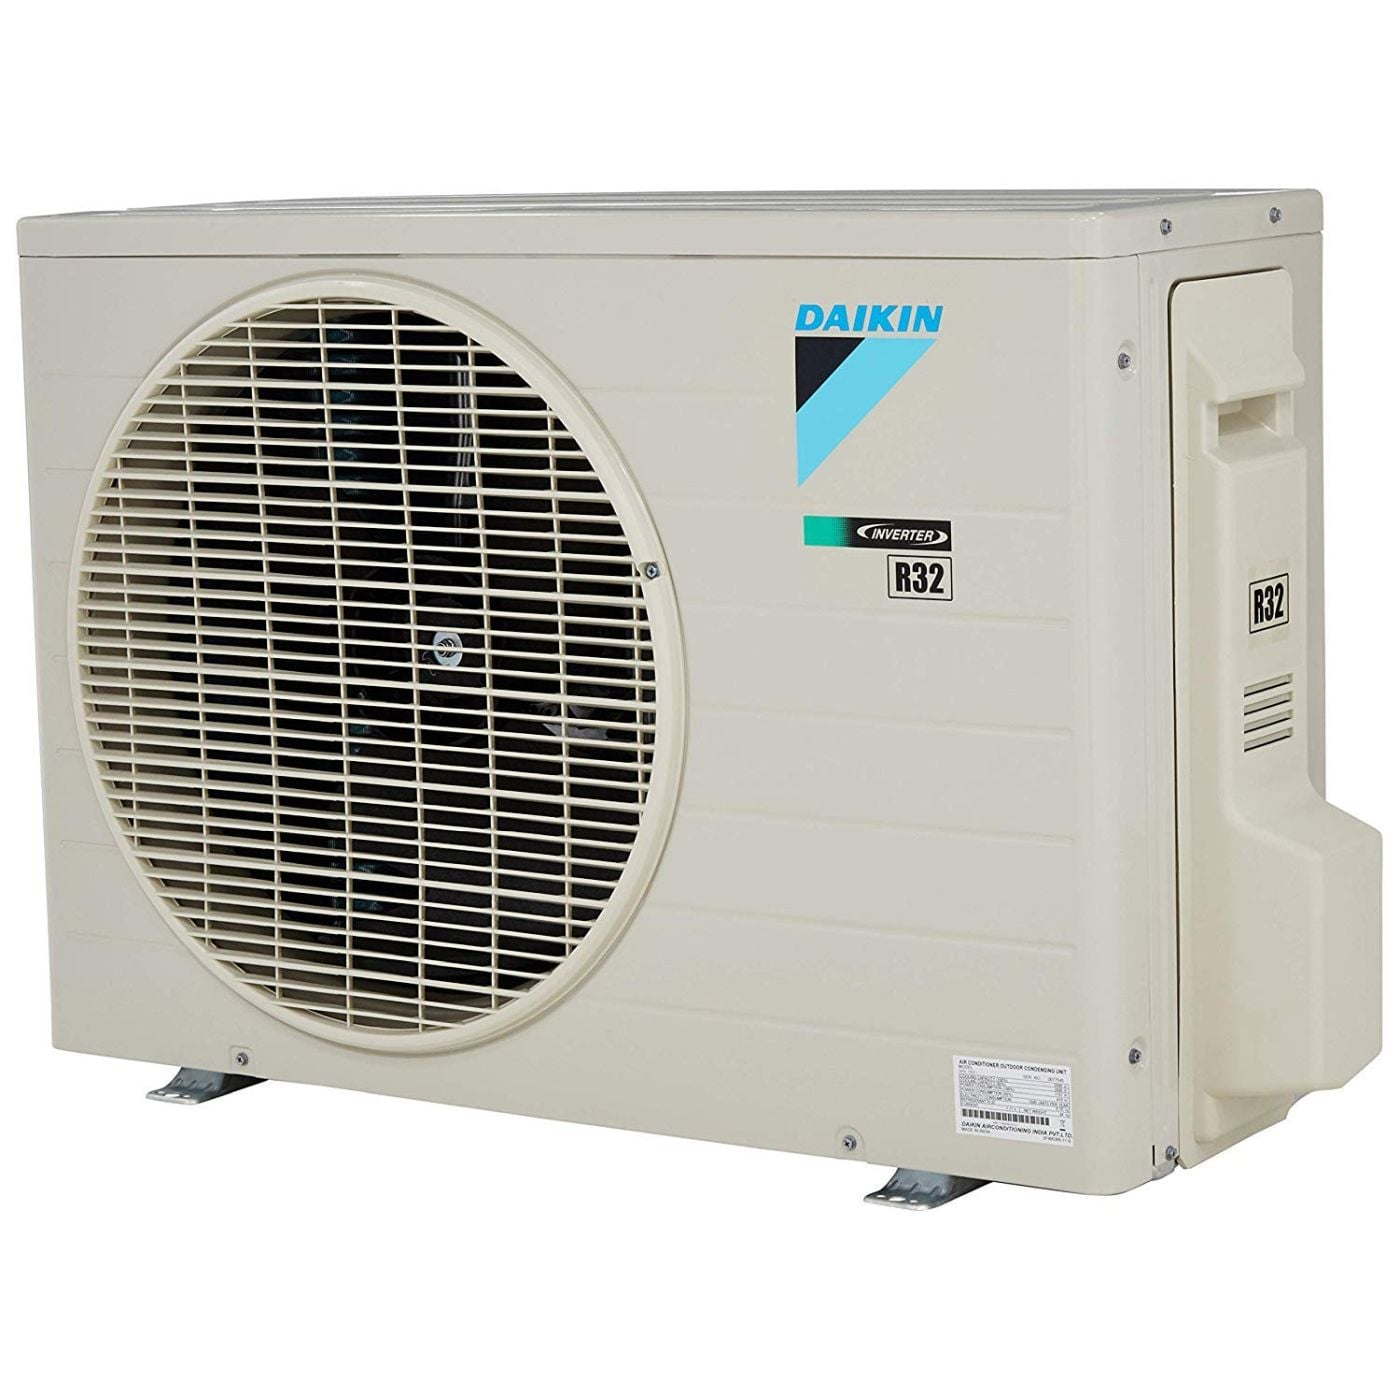 Daikin 5 Star Inverter Entry Series Split AC (FTKG)